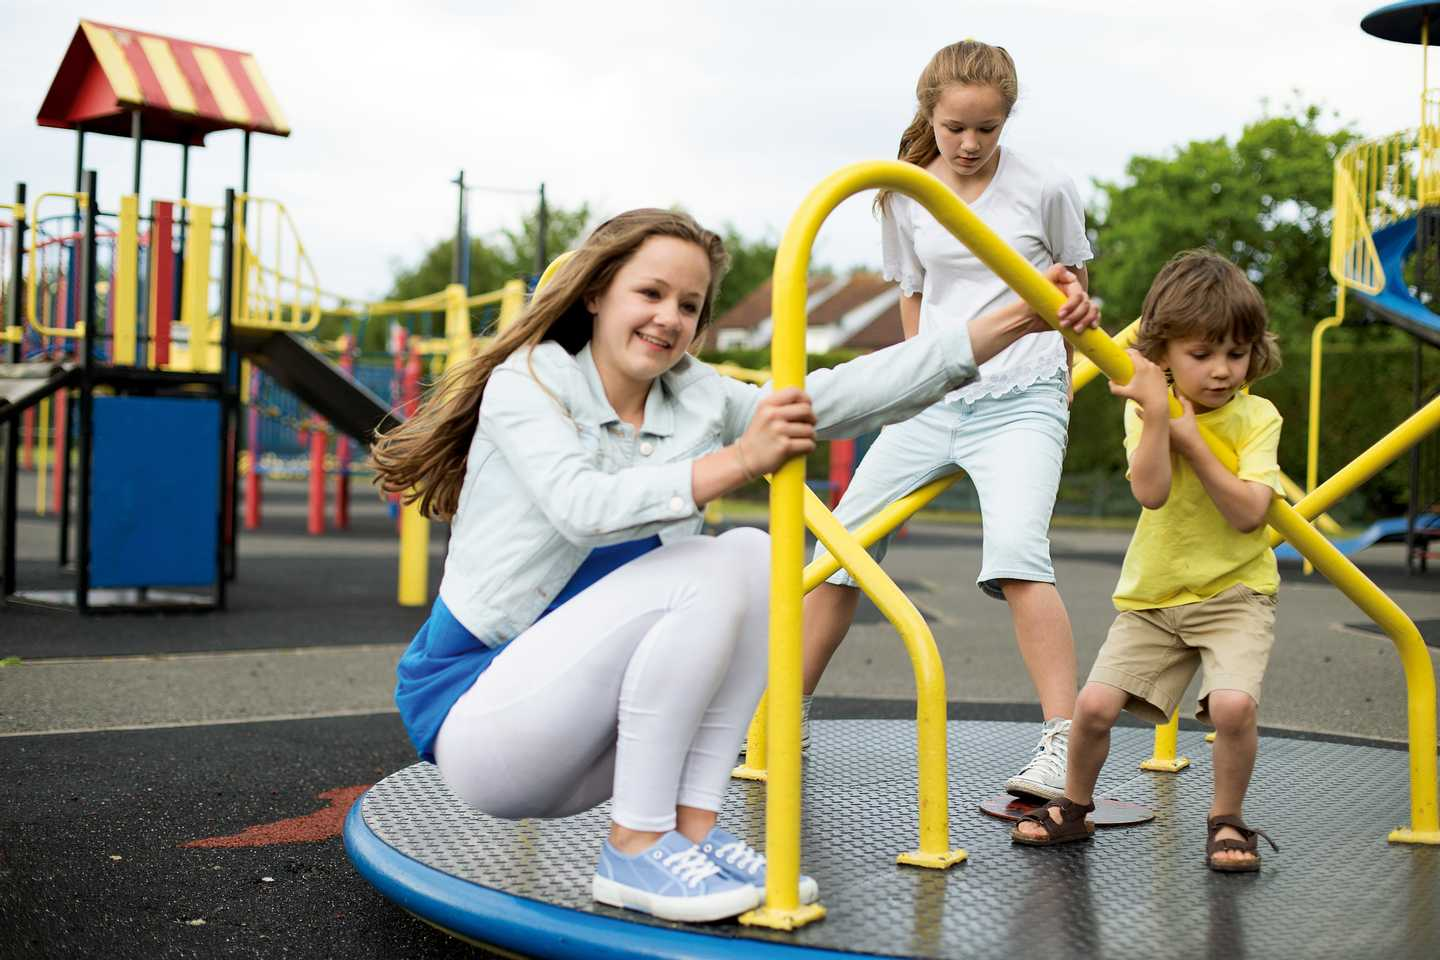 Children plying in the play area at Far Grange